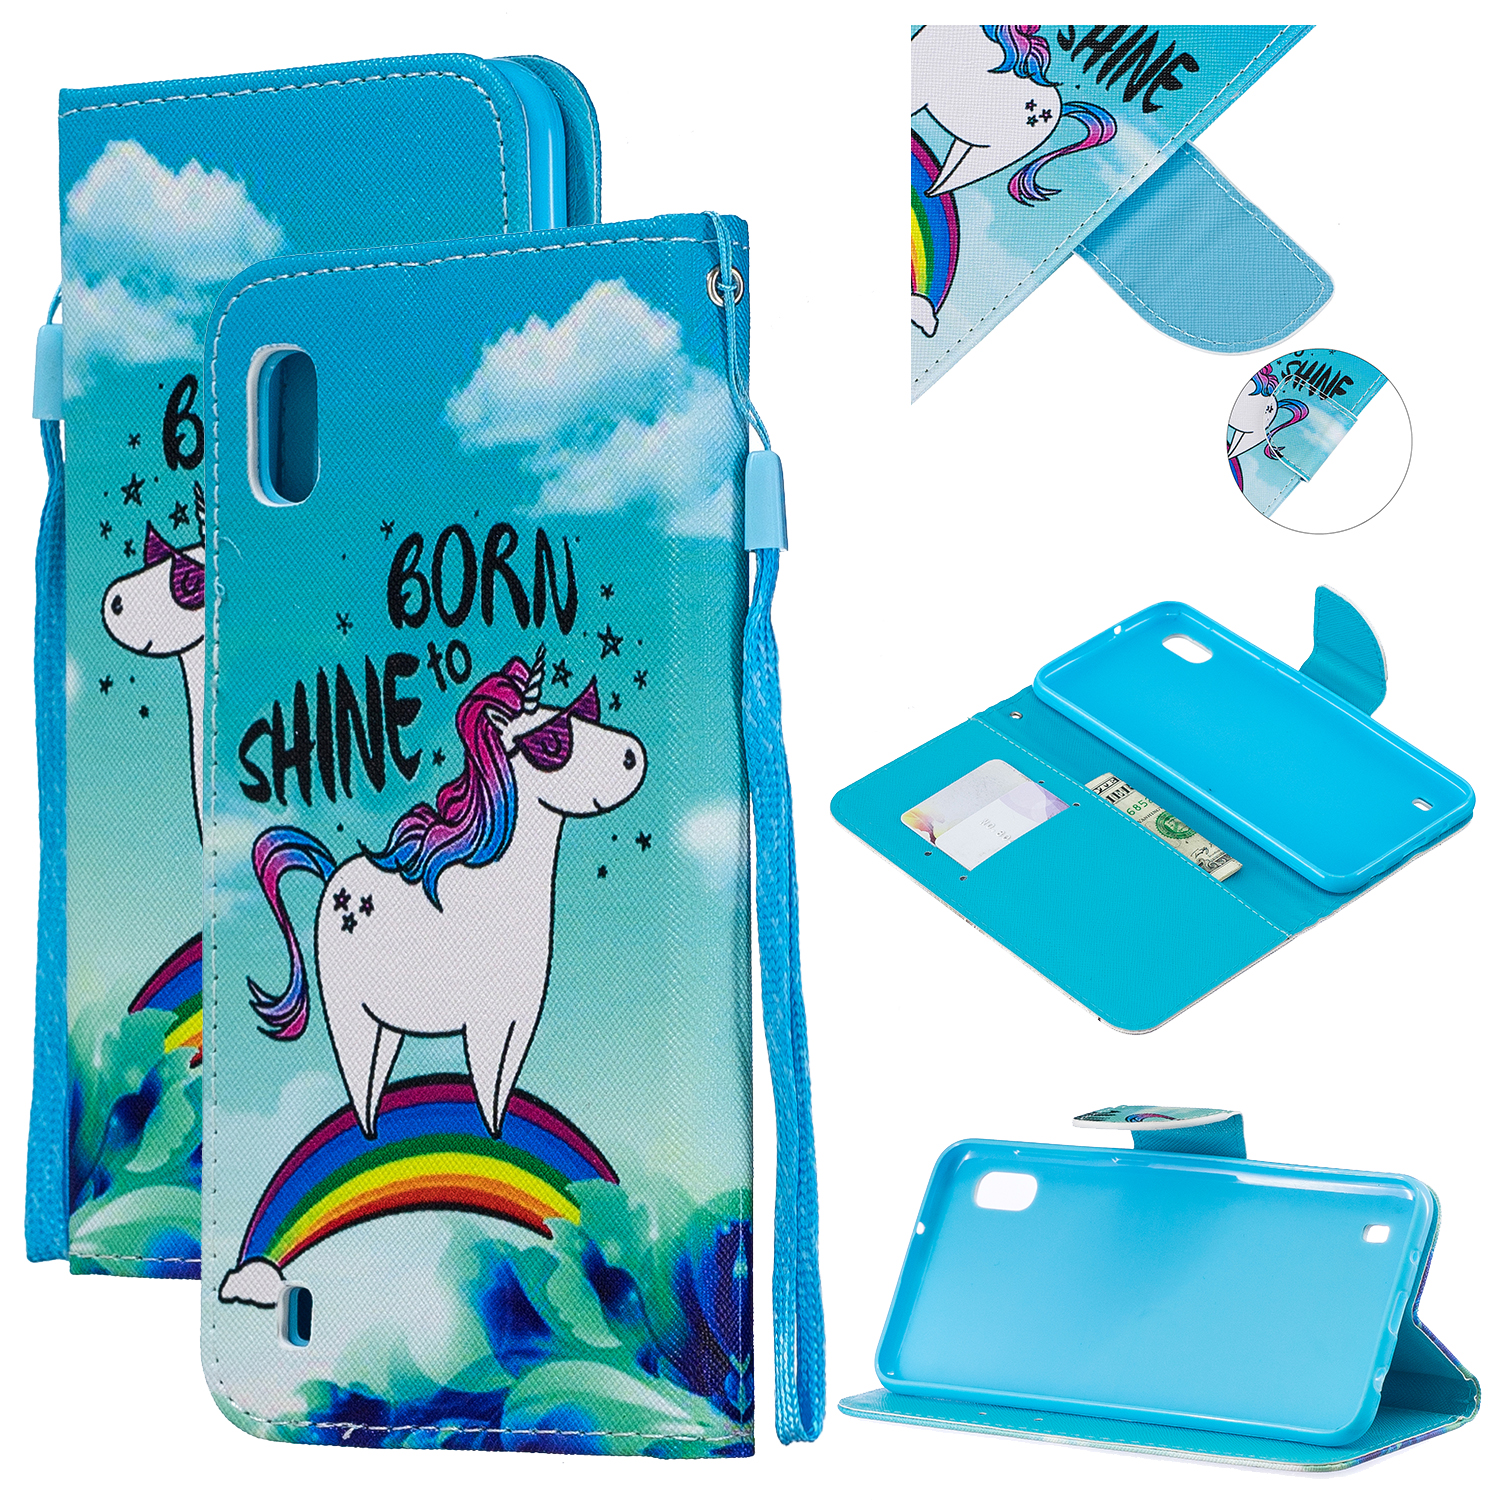 For Samsung A10/A20/A30 Smartphone Case PU Leather Wallet Design Cellphone Cover with Card Holder Stand Available Rainbow horse